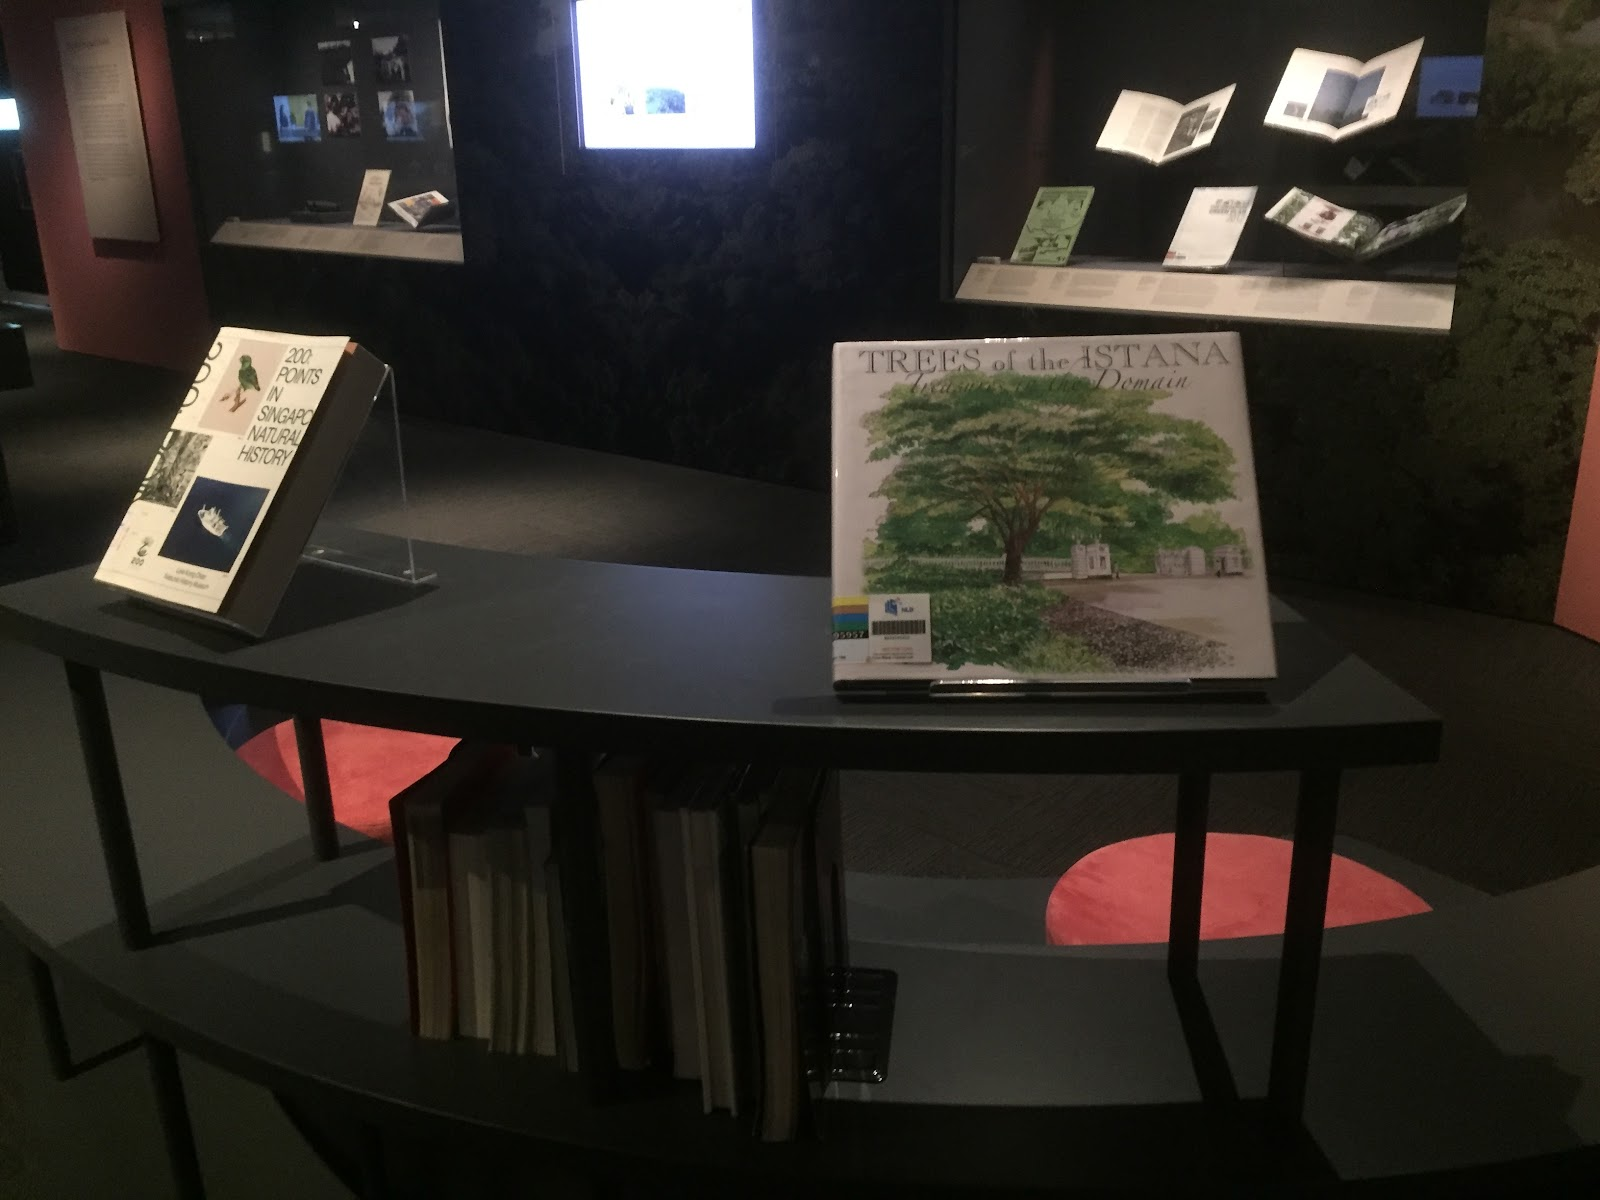 Pick up a book about natural history at the exhibition's reading corner! Pick up a book about natural history at the exhibition's reading corner!